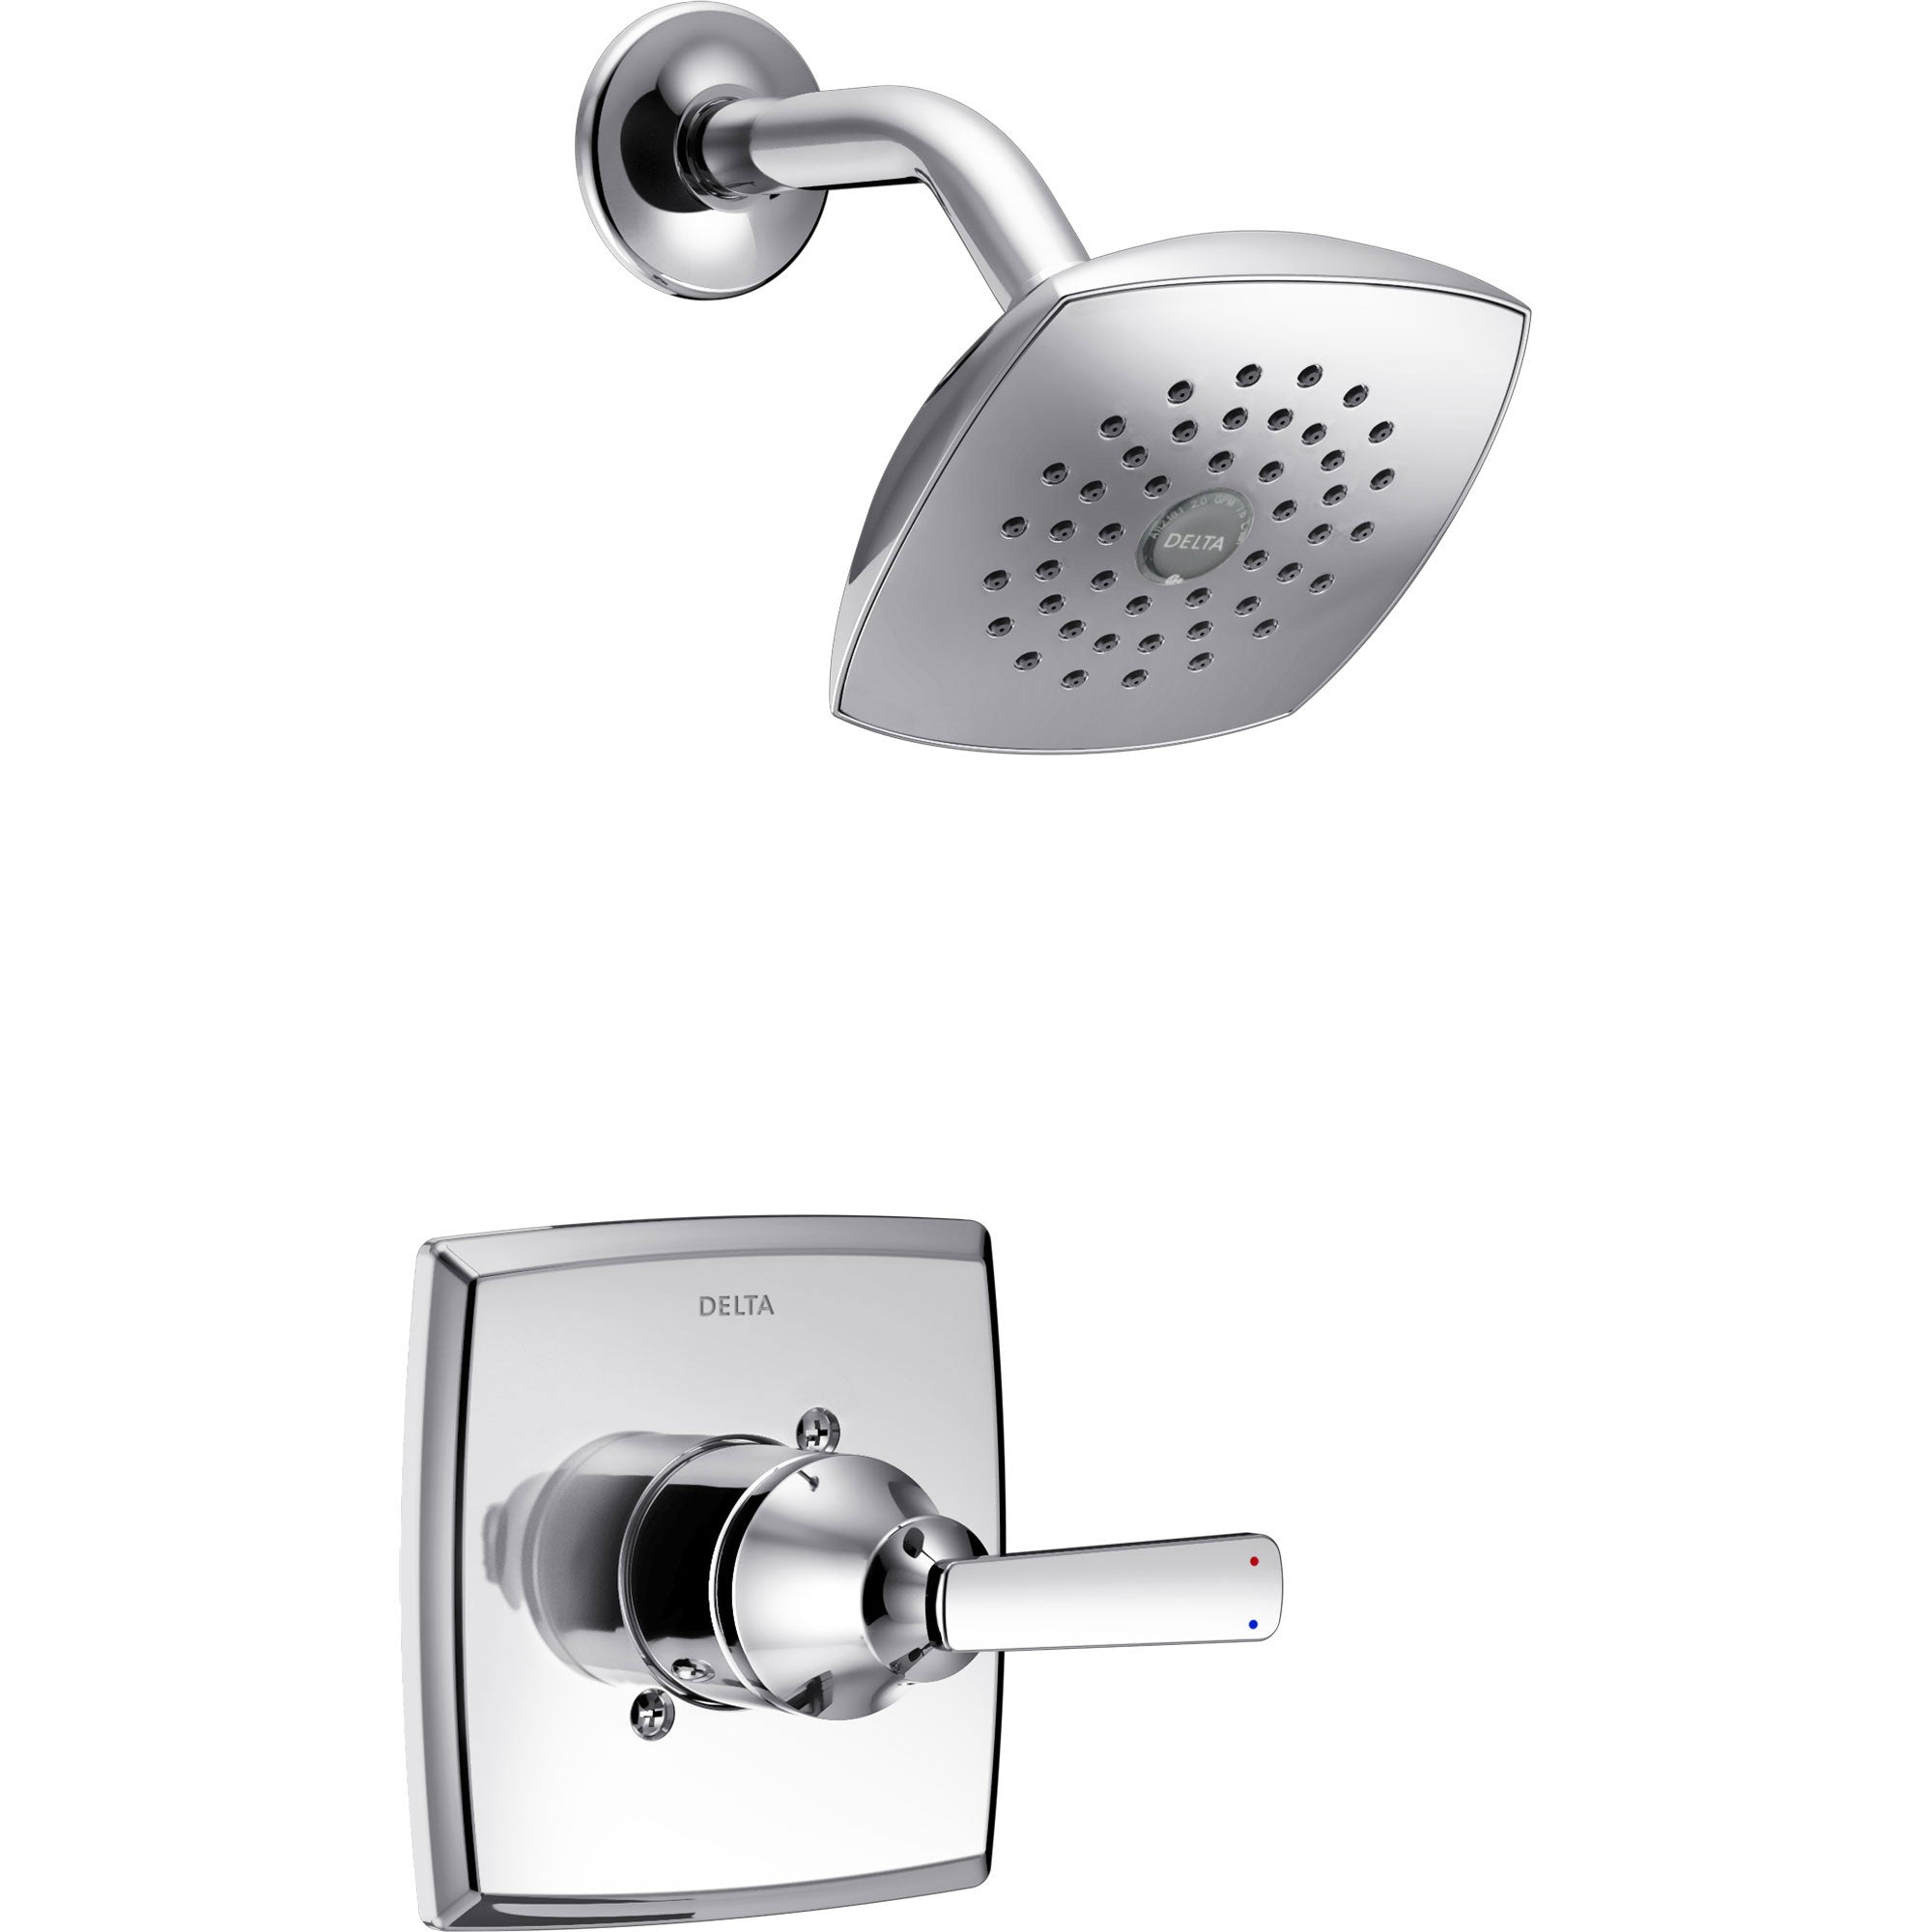 Delta Ashlyn Modern 14 Series Watersense Chrome Finish Single Handle Shower Only Faucet INCLUDES Rough-in Valve D1234V